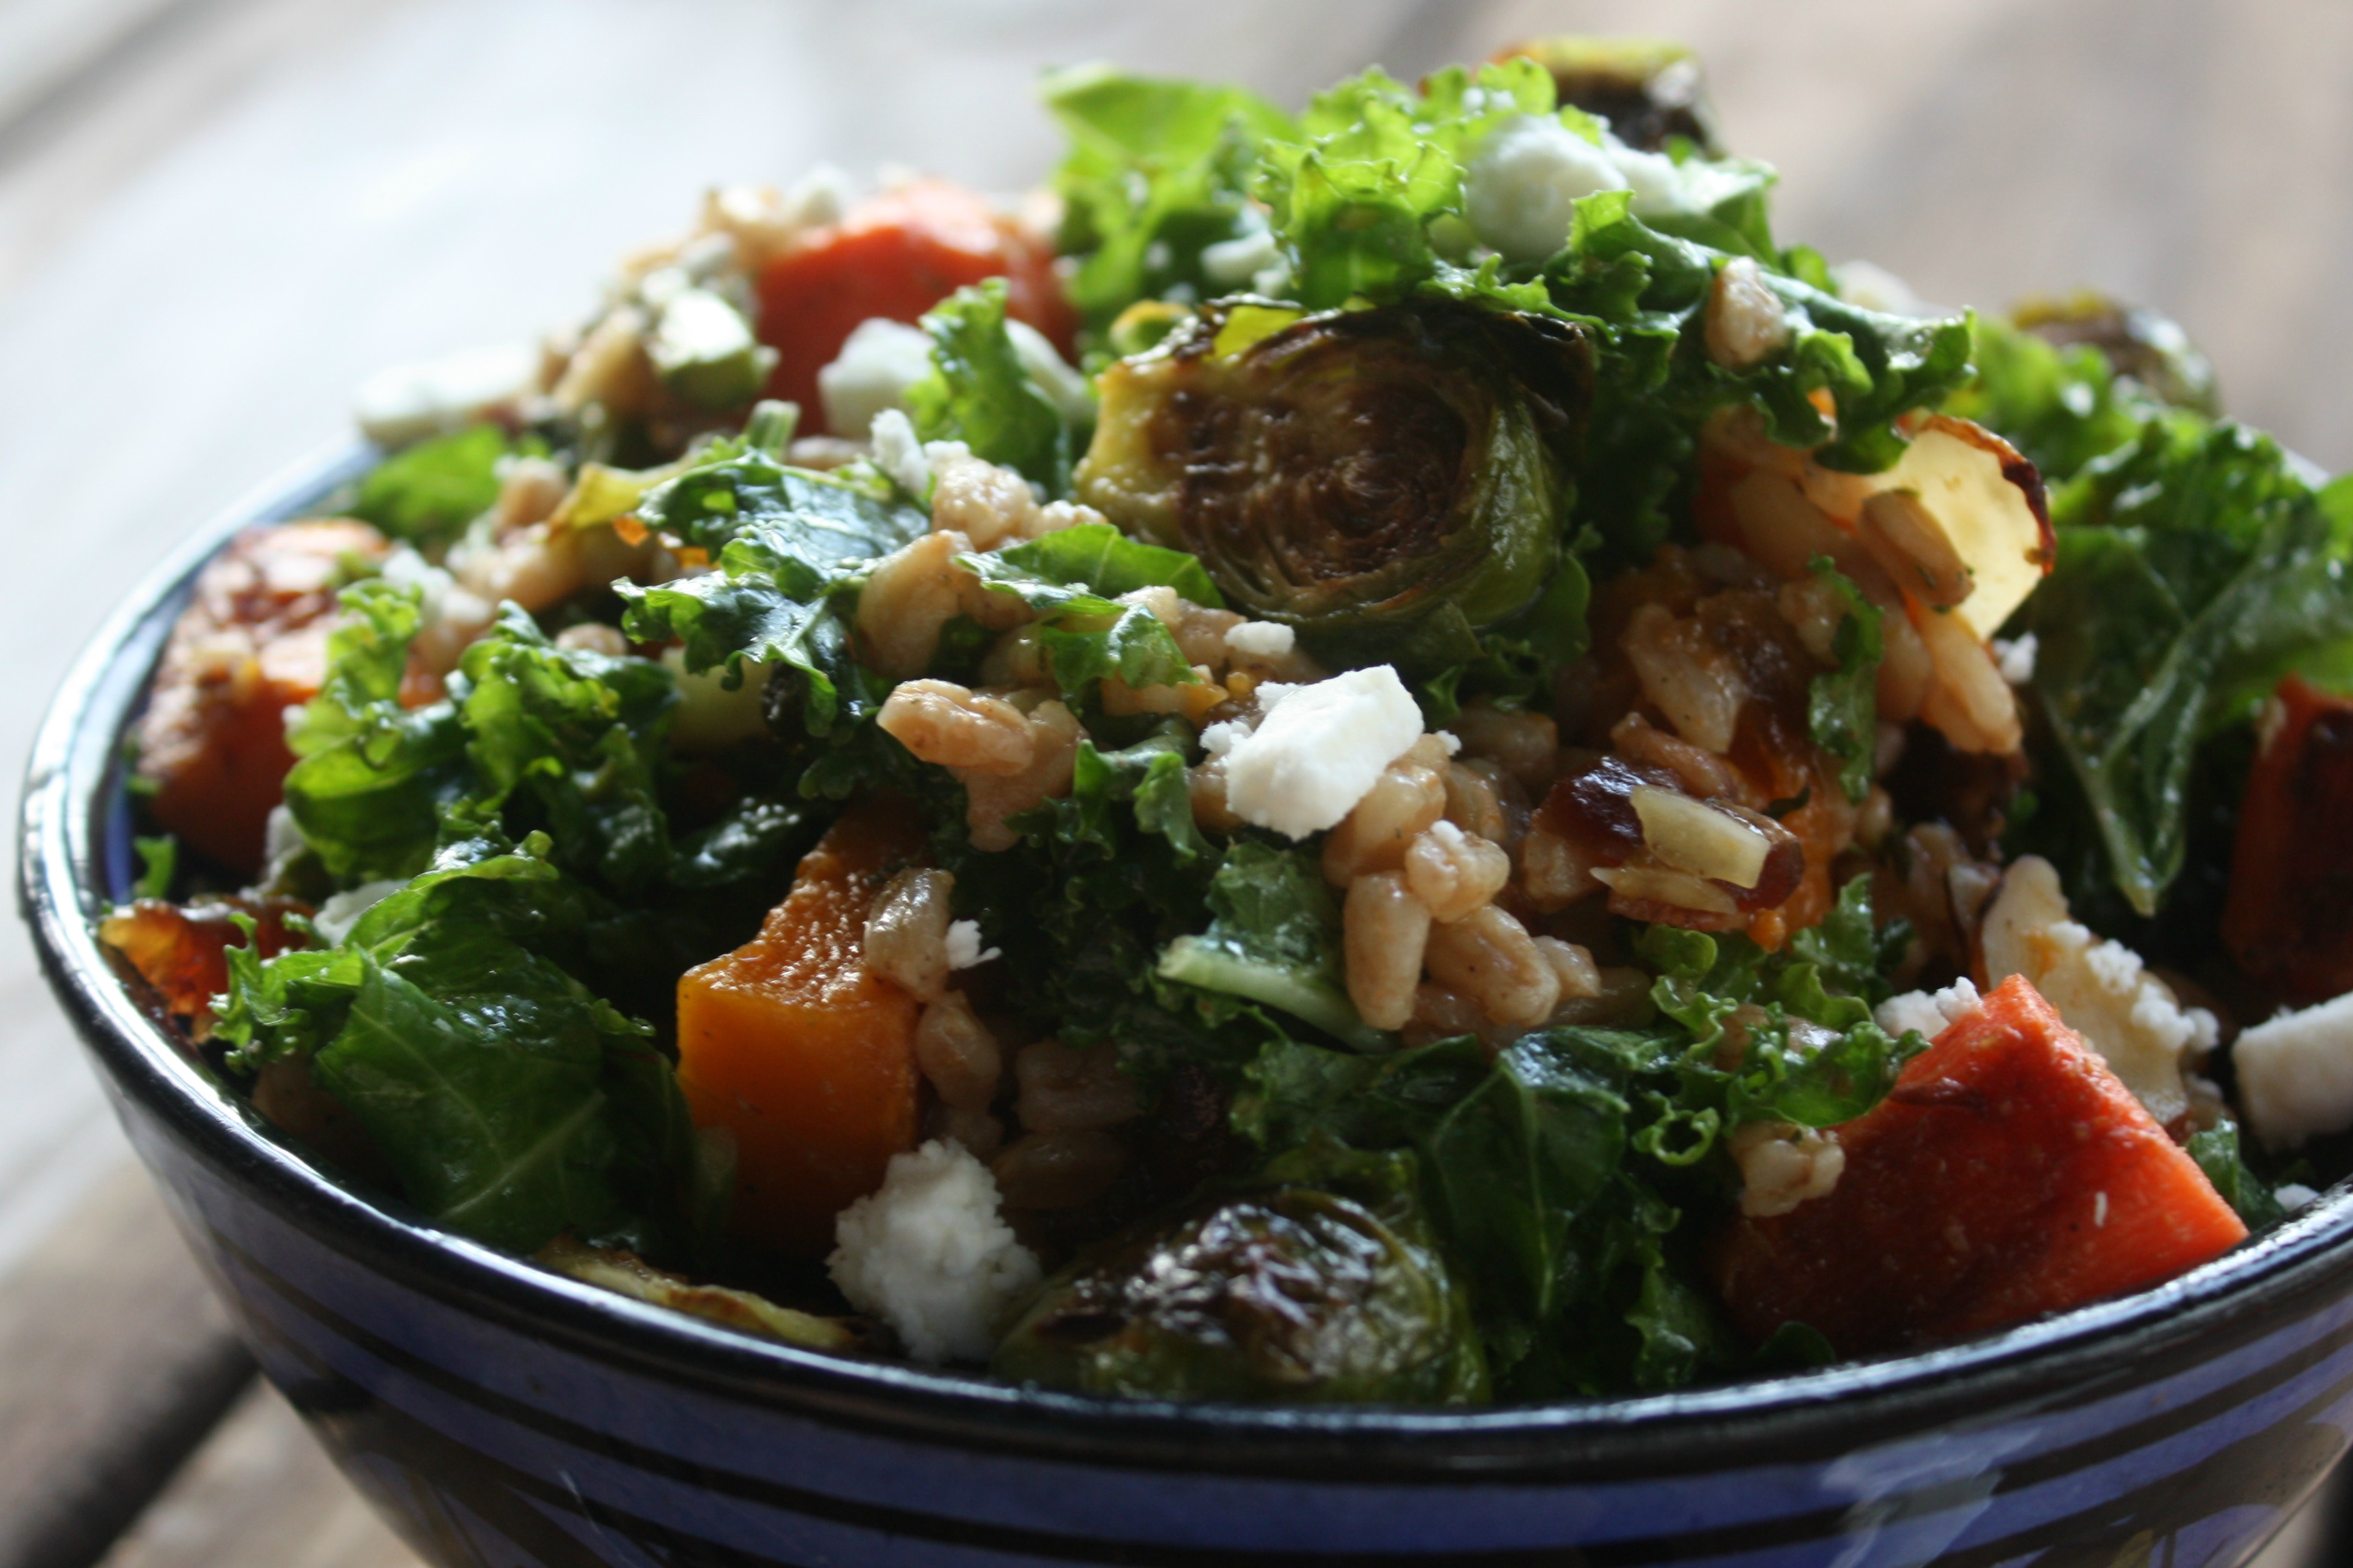 Kale and Farro Salad with Roasted Vegetables and Feta Cheese.